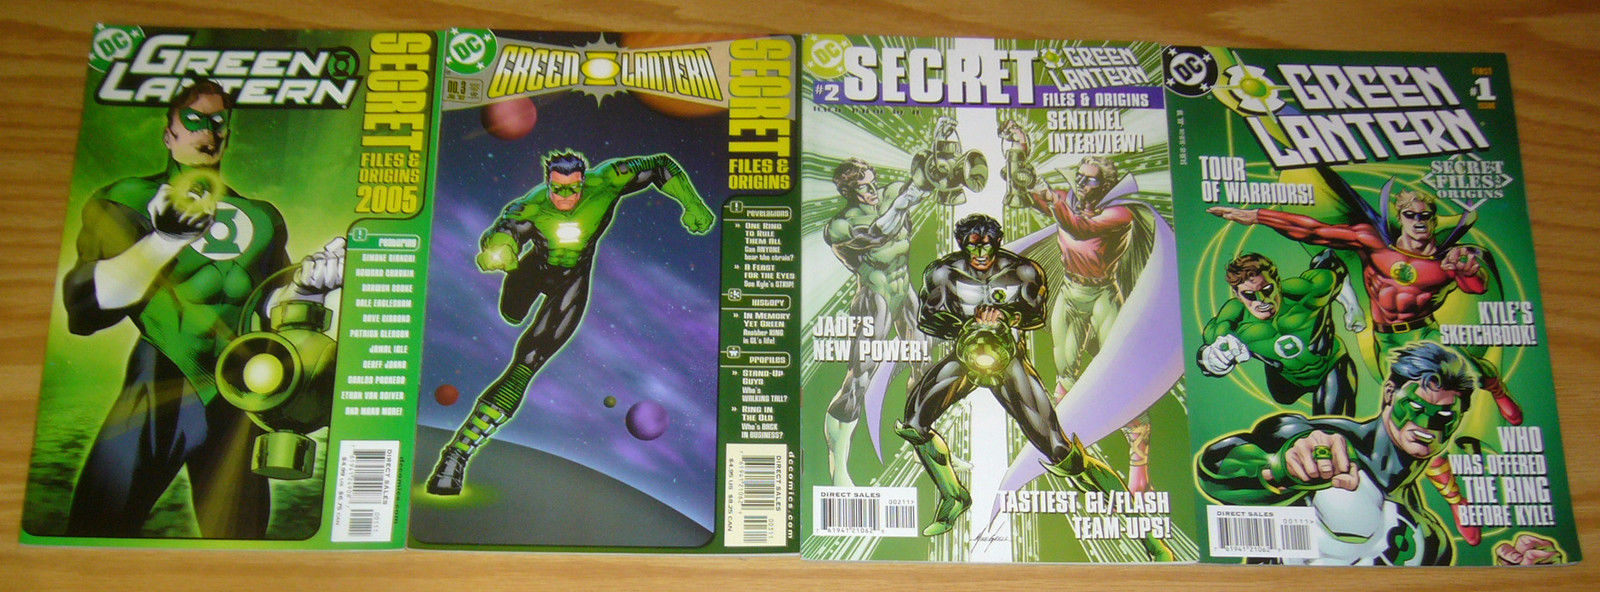 Green Arrow Secret File /& Origins #1 DC 2002 Comic Book VF-//VF